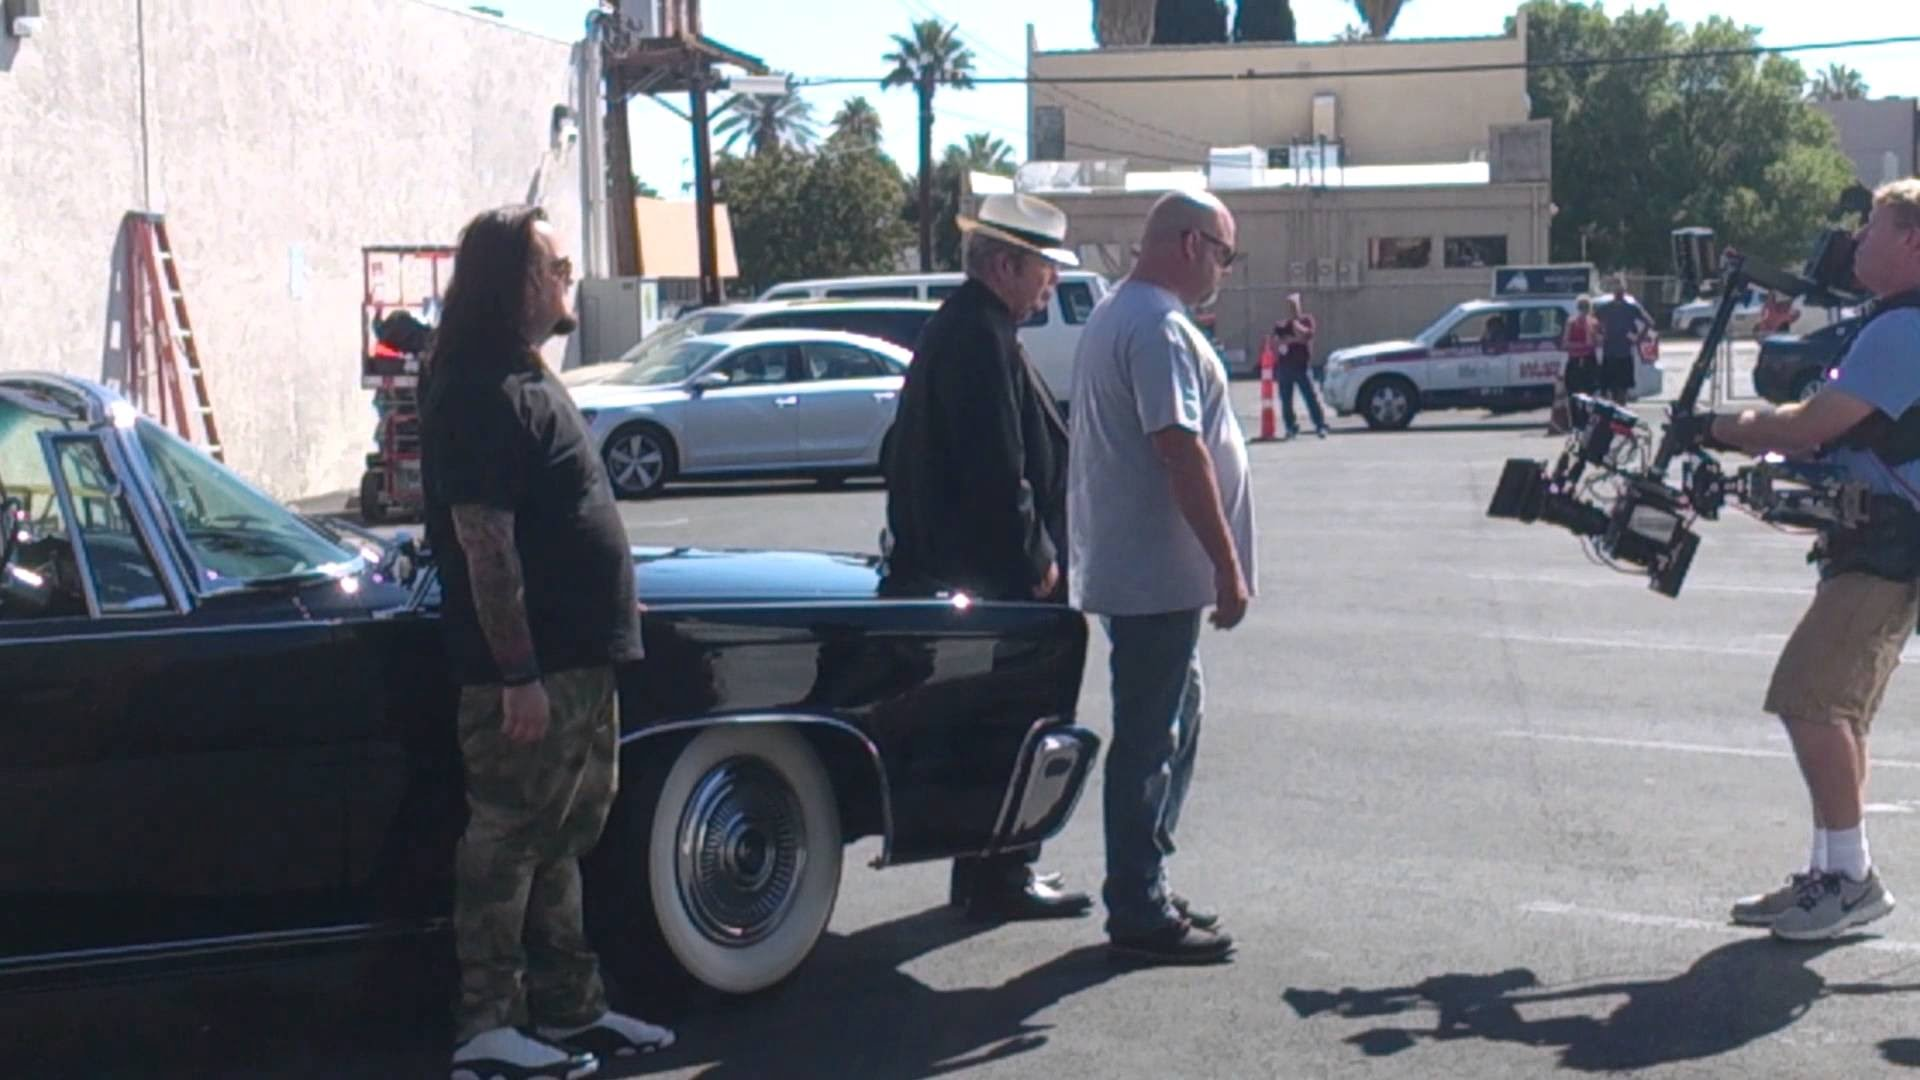 pawn-stars-filming-locations-las-vegas-pic2